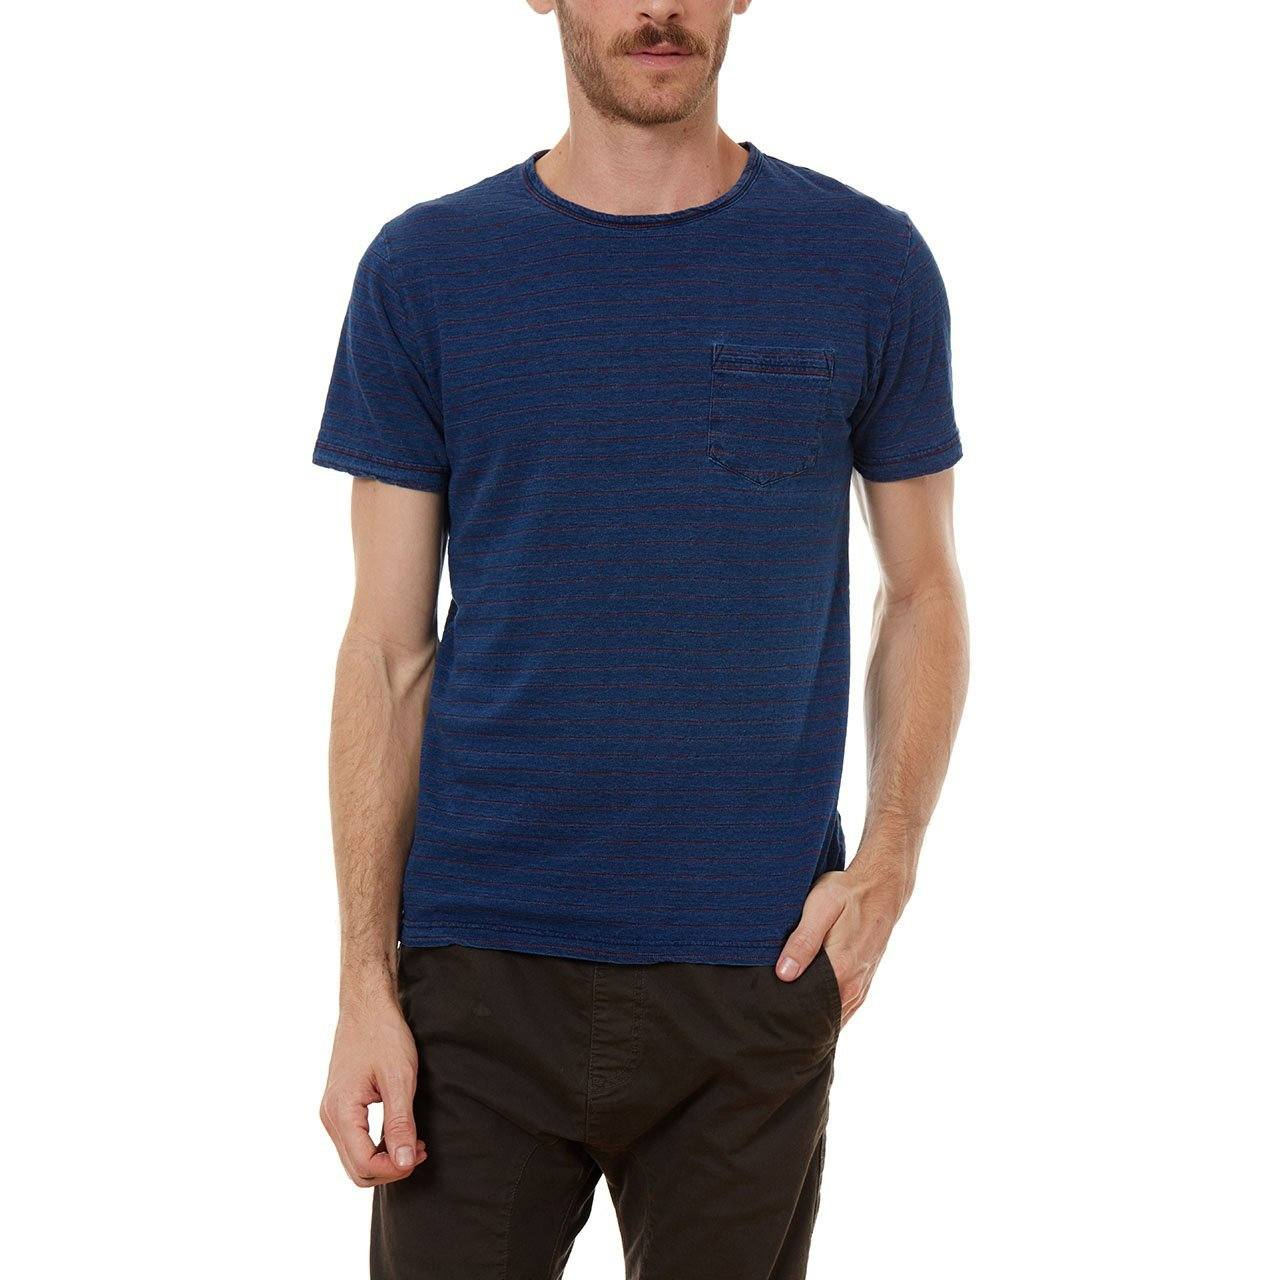 Short Sleeve Tee - Pierce Jacquard Tee